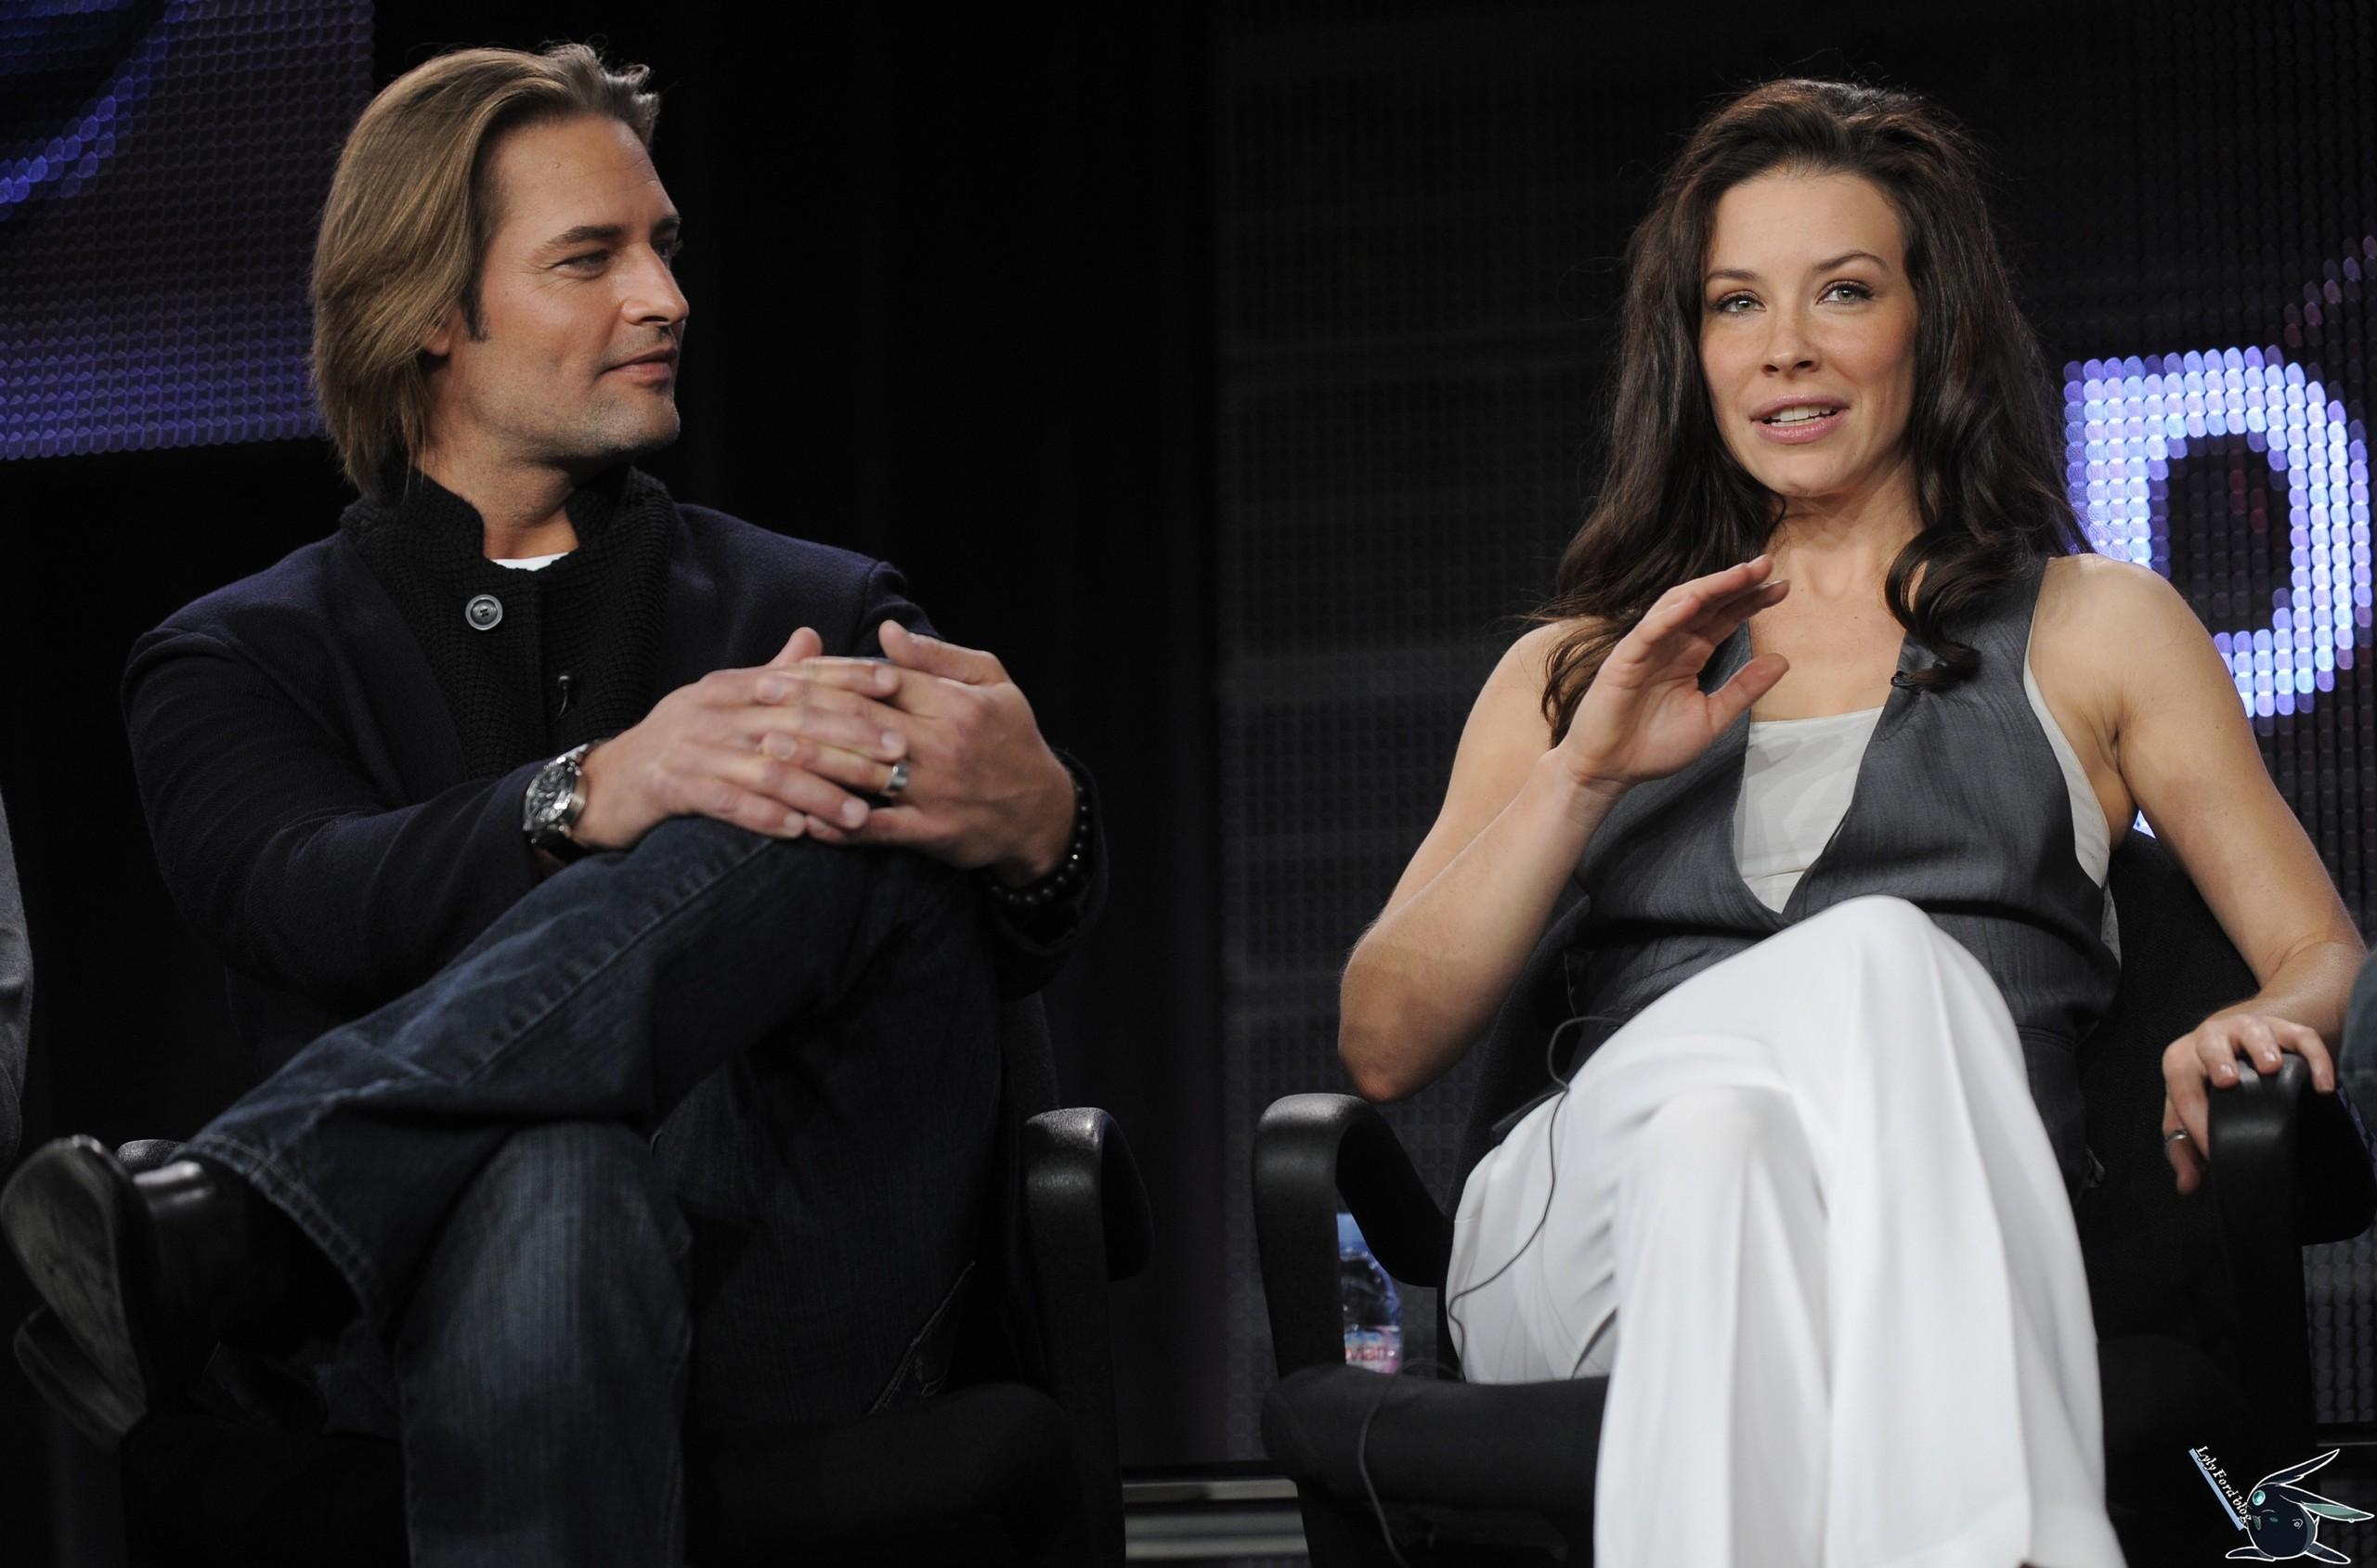 Evangeline lilly and josh holloway